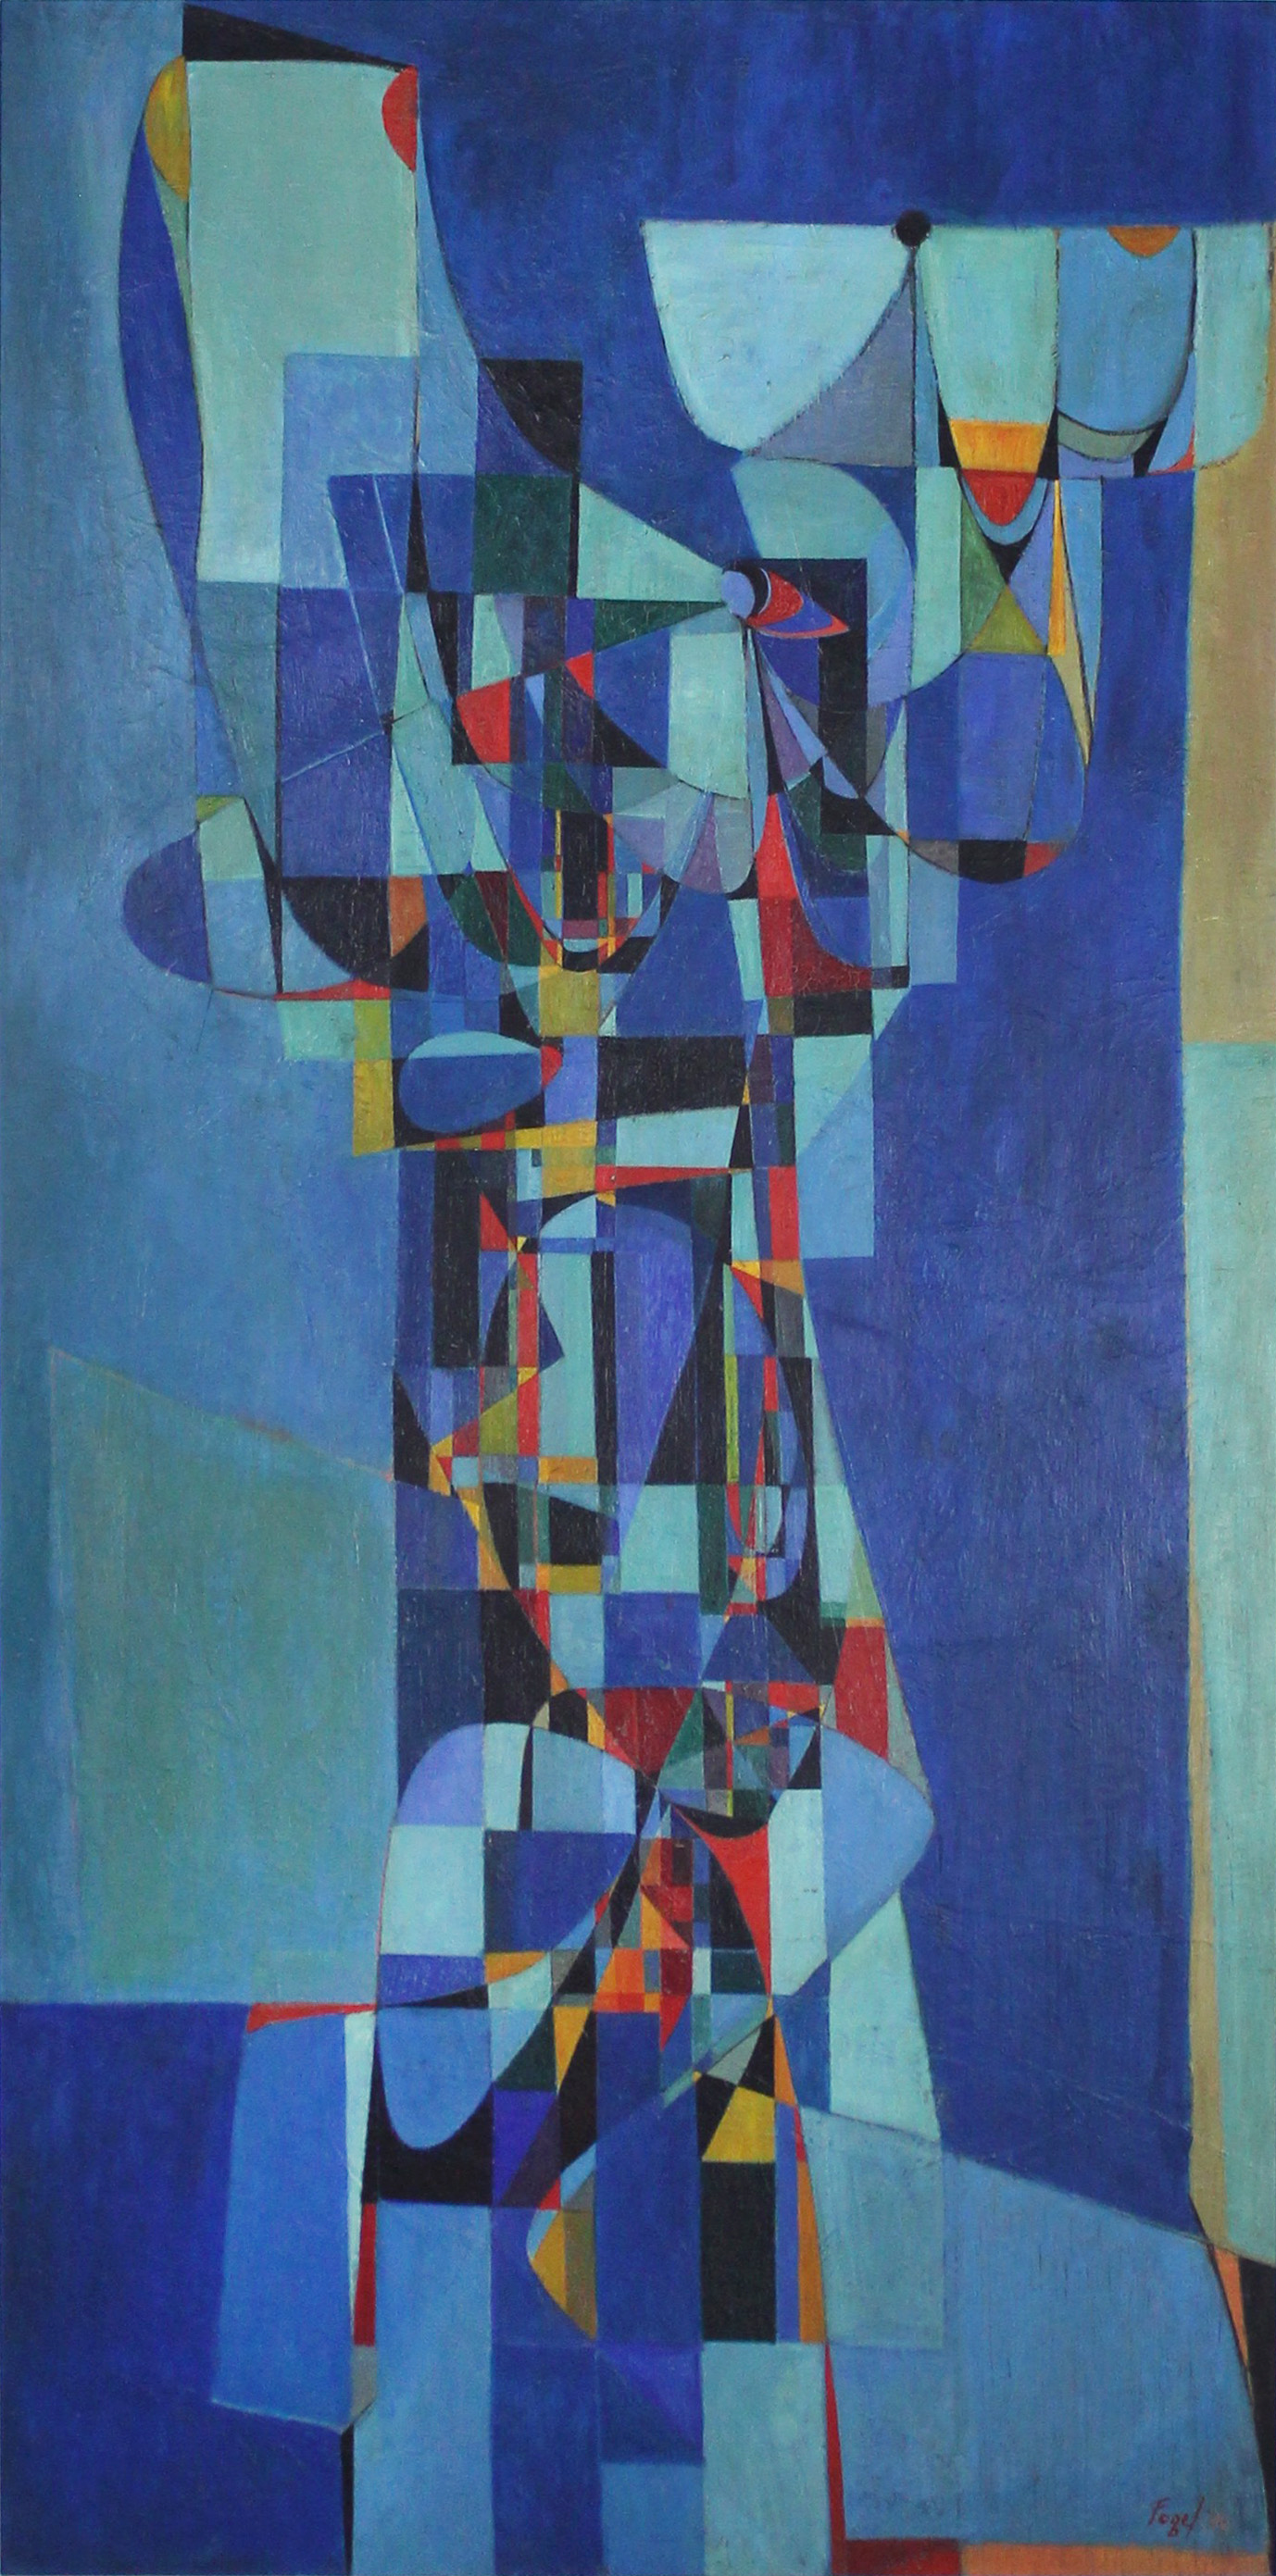 Totemic Form, c. 1950_ Oil on Masonite_ Collection of C. Matthew Taylor